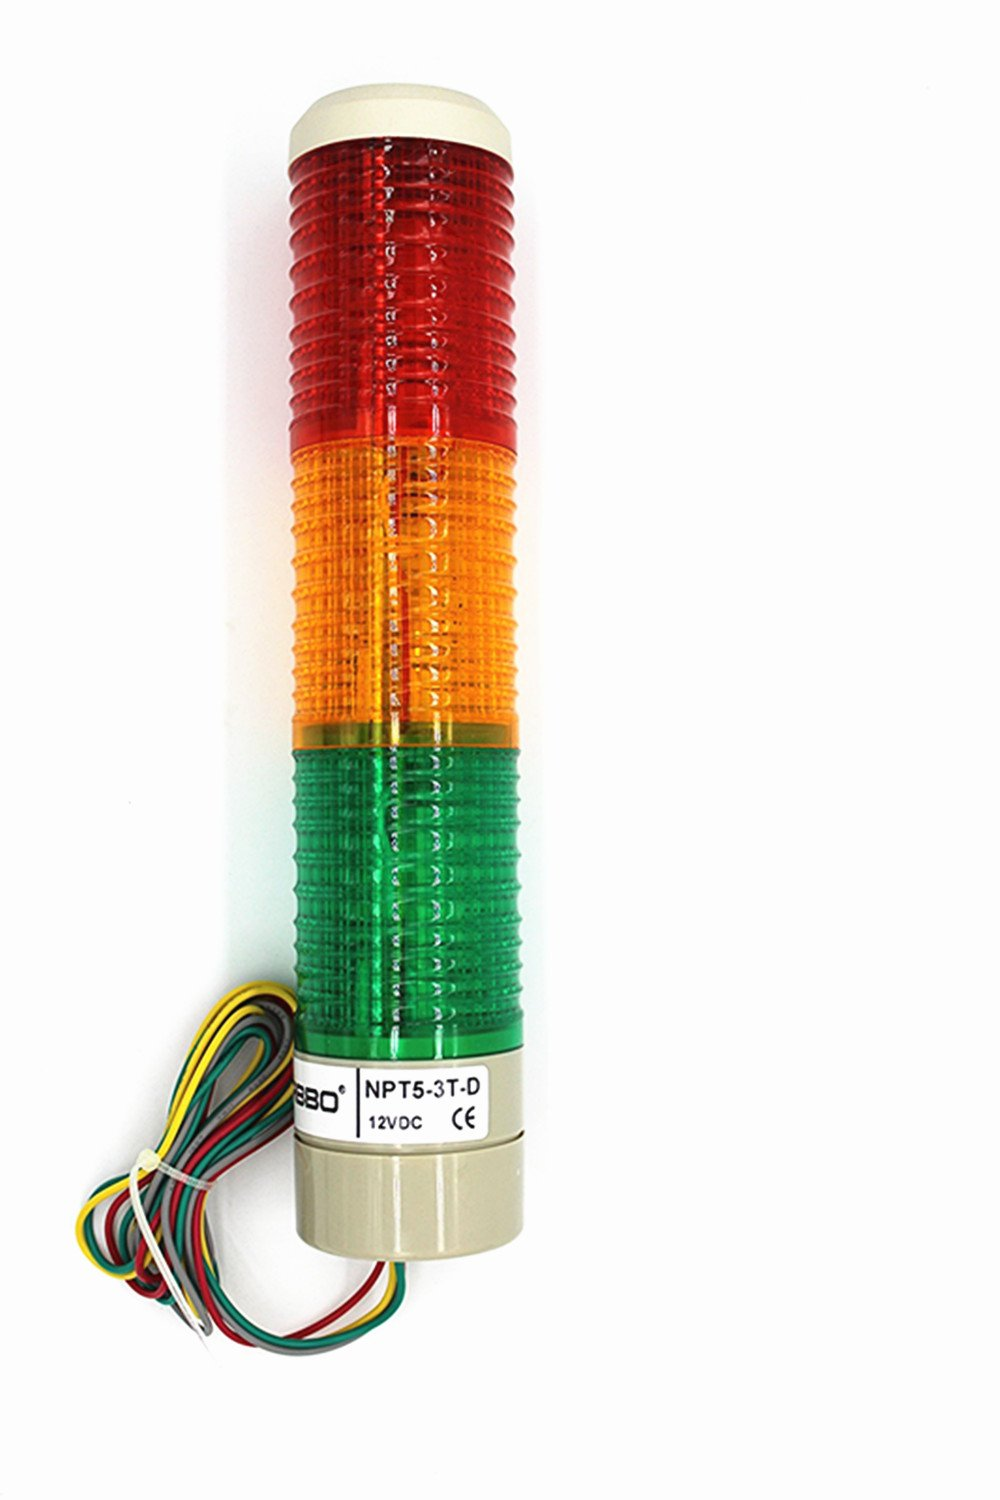 Nxtop Industrial Signal Light Column LED Alarm Round Tower Light Indicator Warning Light r Red Green Yellow DC 12V Steady On